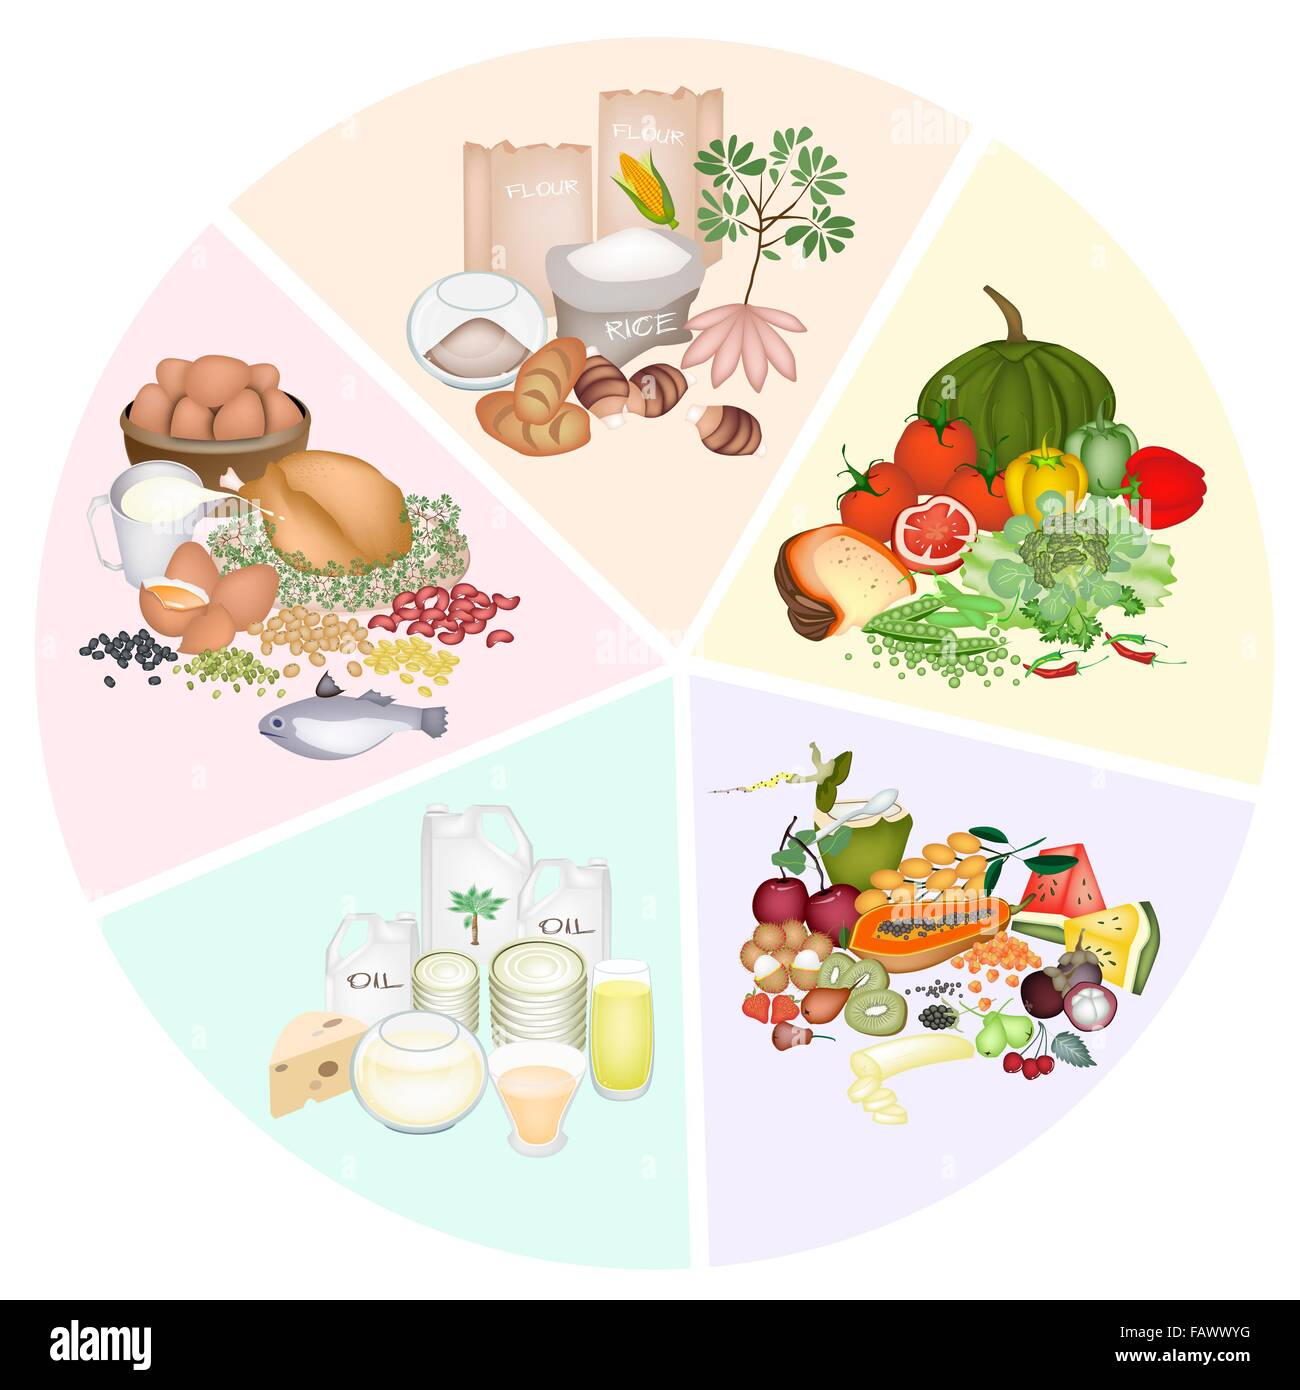 A pie chart of food groups for carbohydrate protein fat vitamin a pie chart of food groups for carbohydrate protein fat vitamin and mineral to improve nutrient intake and health benefits nvjuhfo Image collections